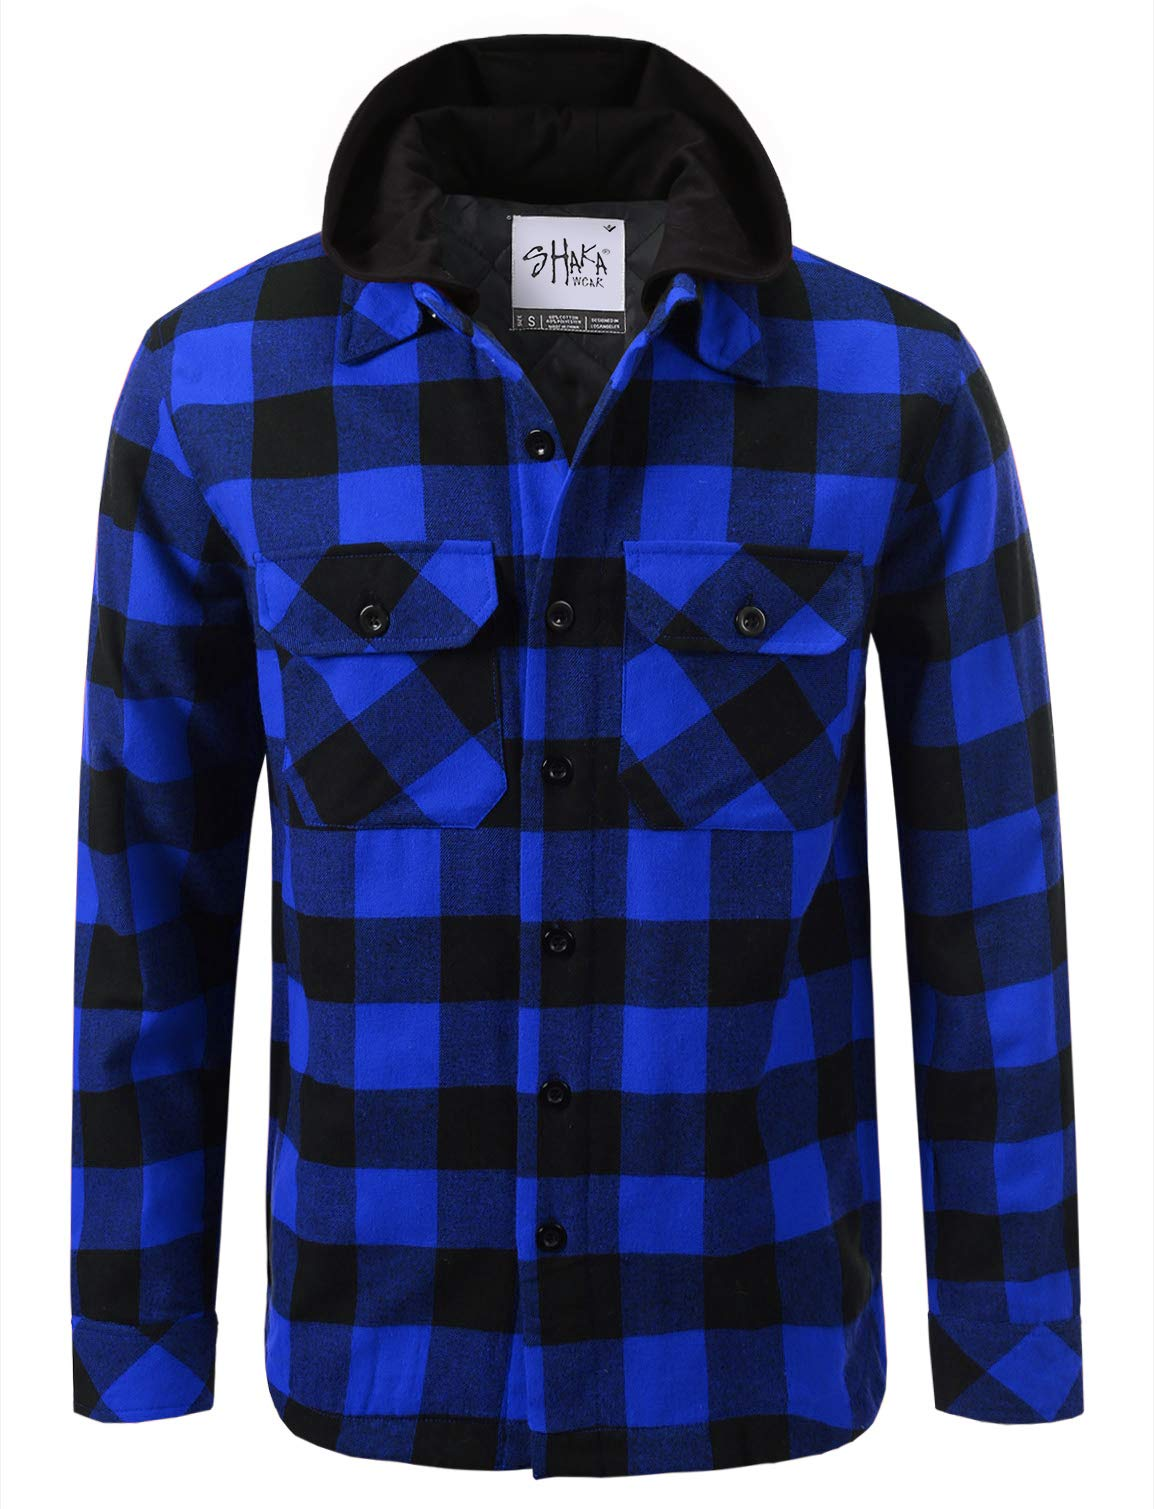 Shaka Wear FFJ1302_M Hooded Flannel Jacket Quilted Iined Royal/Black M by Shaka Wear